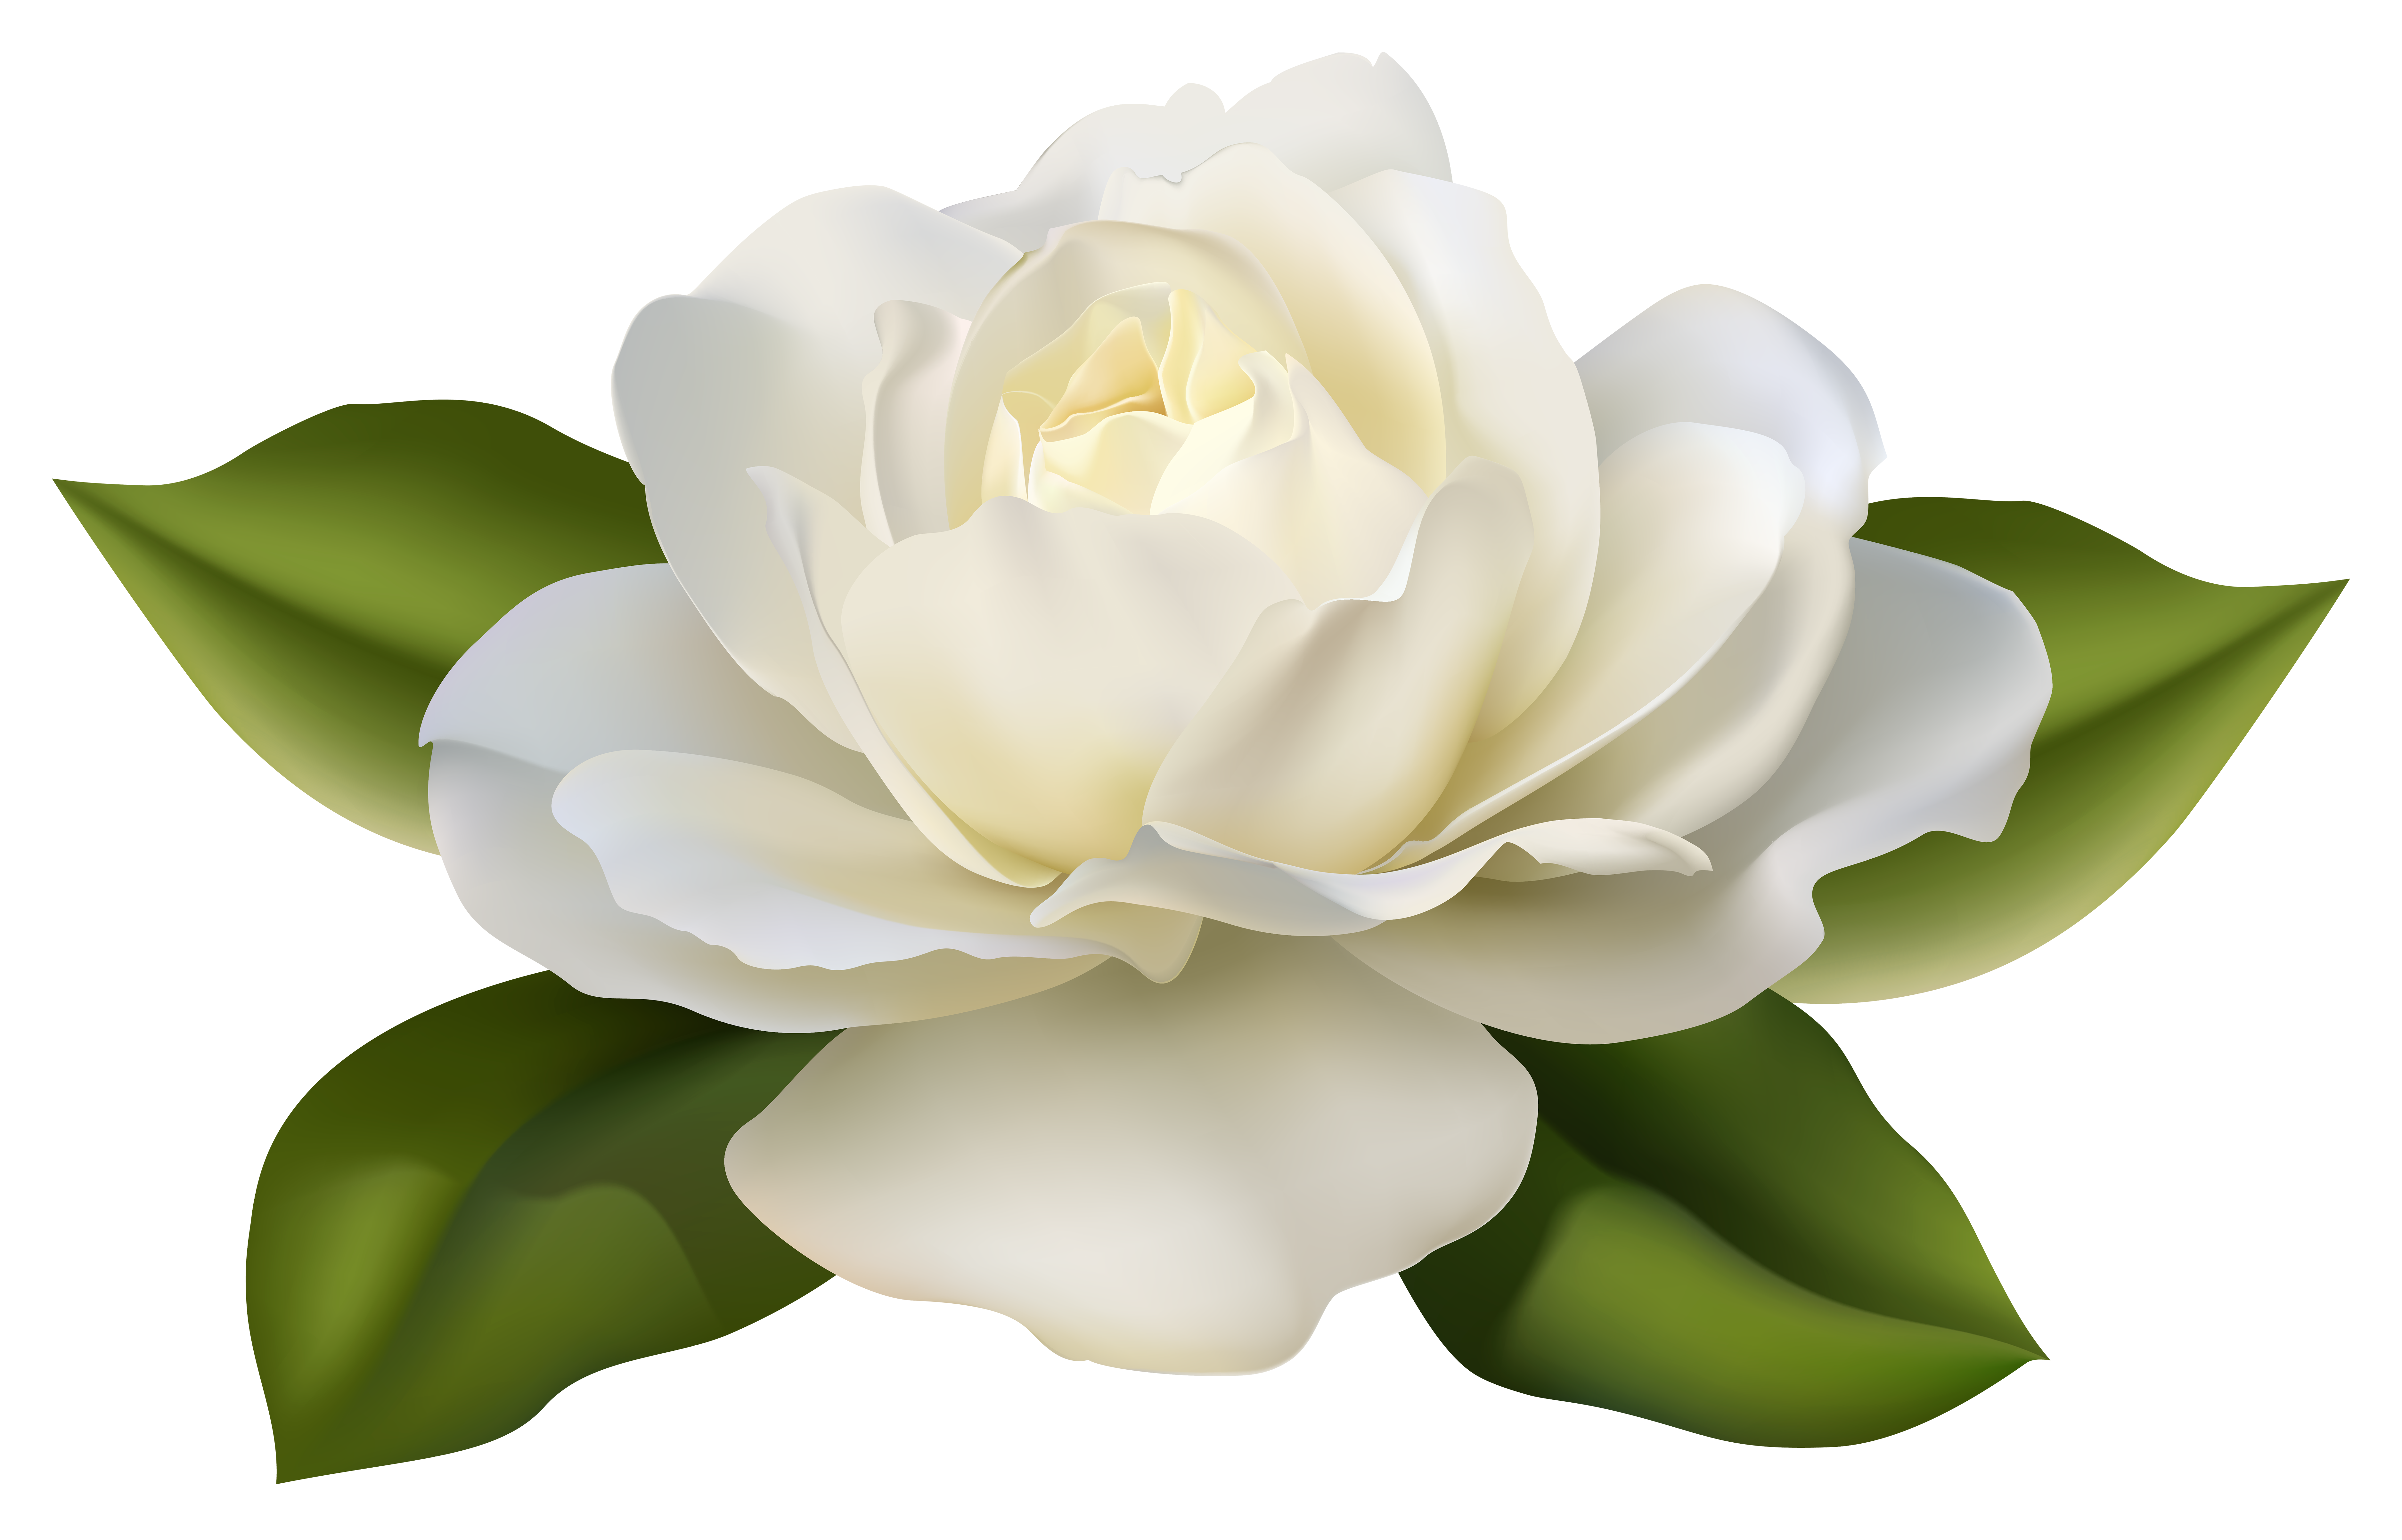 Beautiful White Rose with Leaves PNG Image.